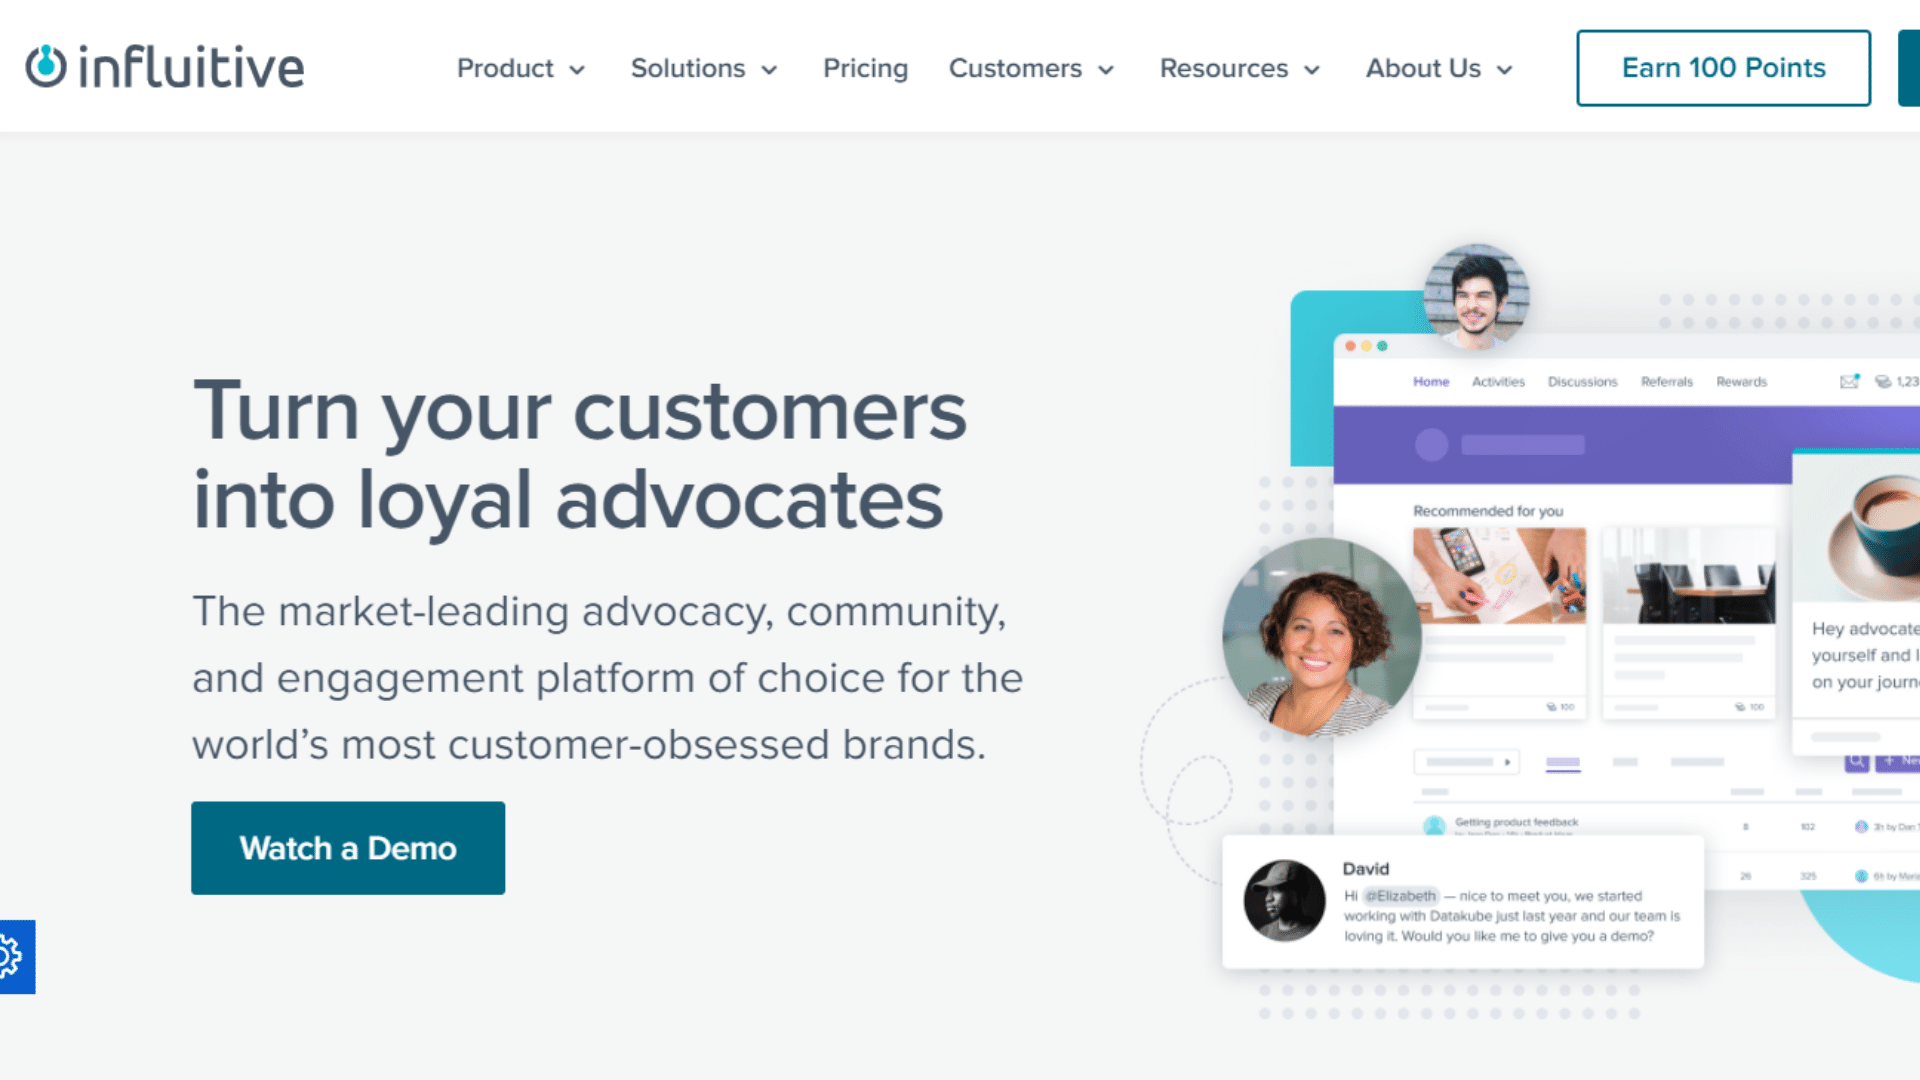 Influitive customer loyalty software